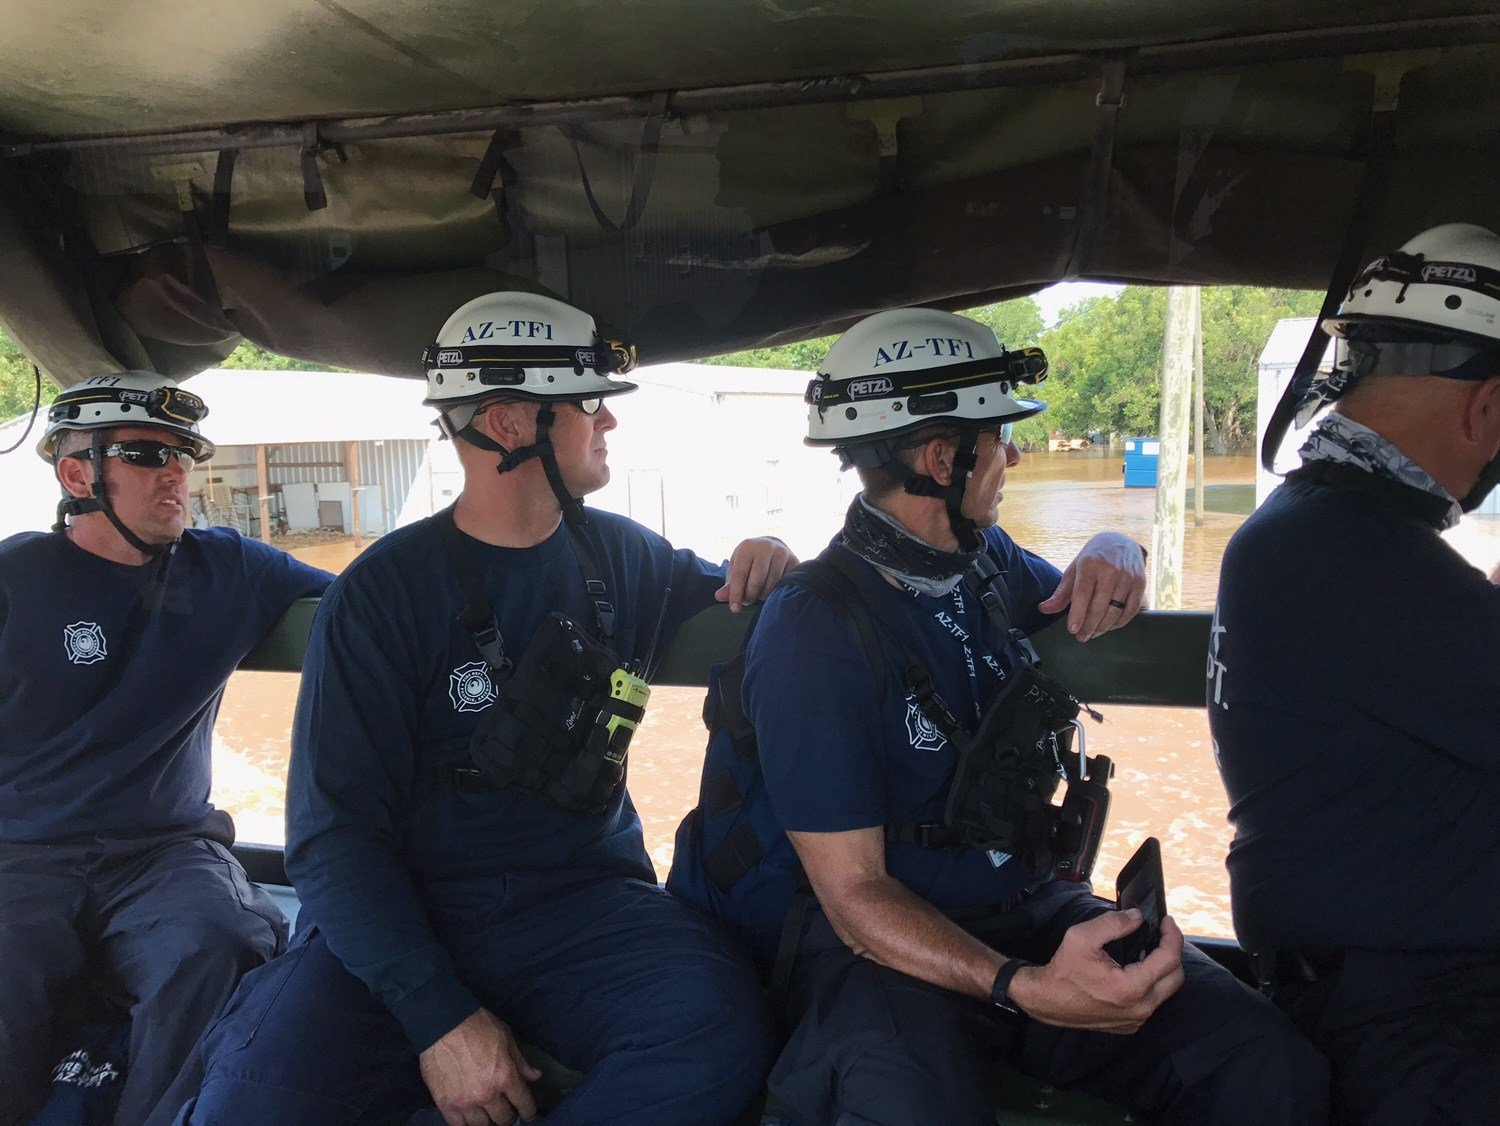 The task force went to Texas last month to provide help after Harvey. (Source: 3TV/CBS 5)